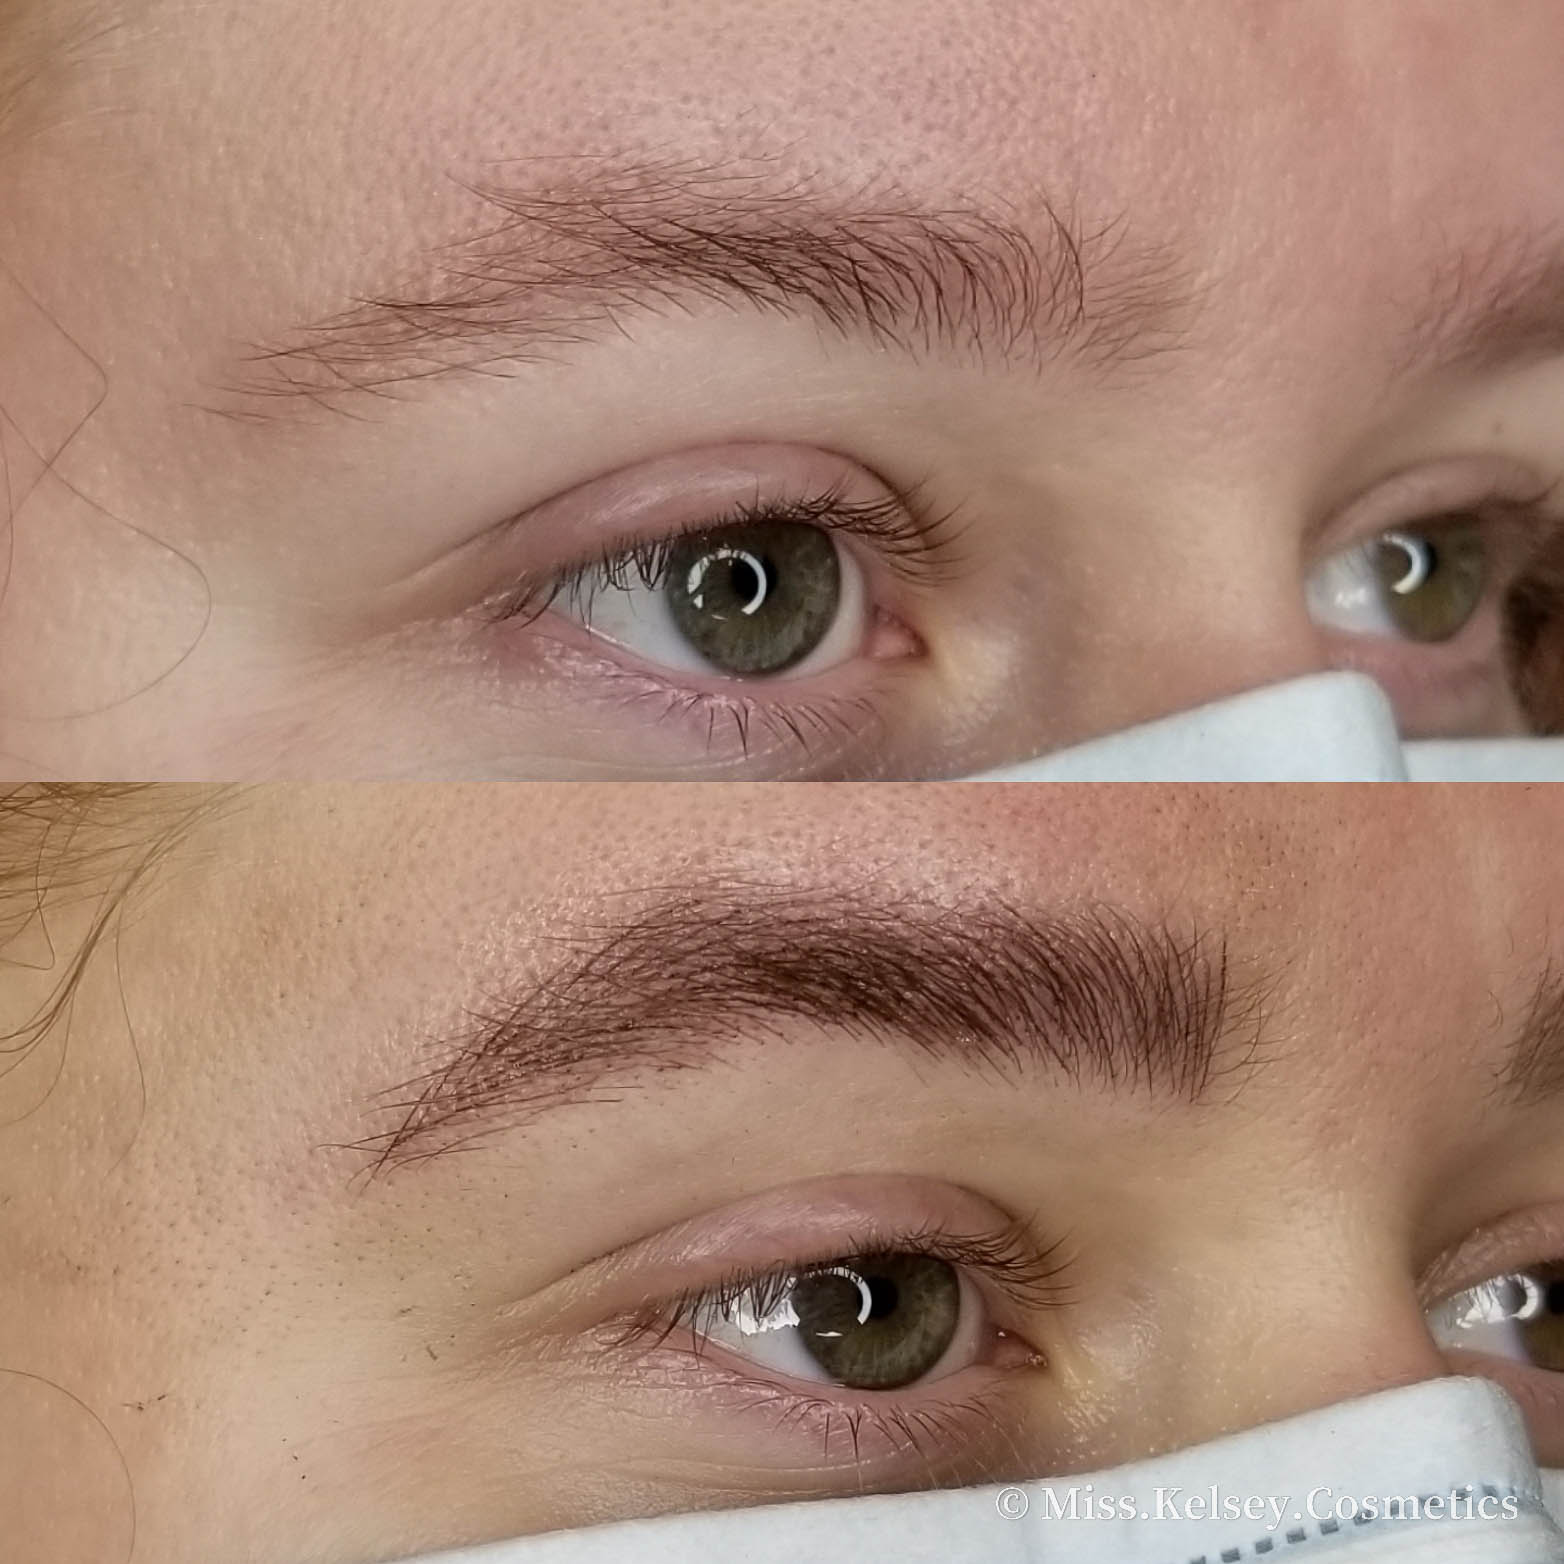 Microblading Before on Top, After on Bottom